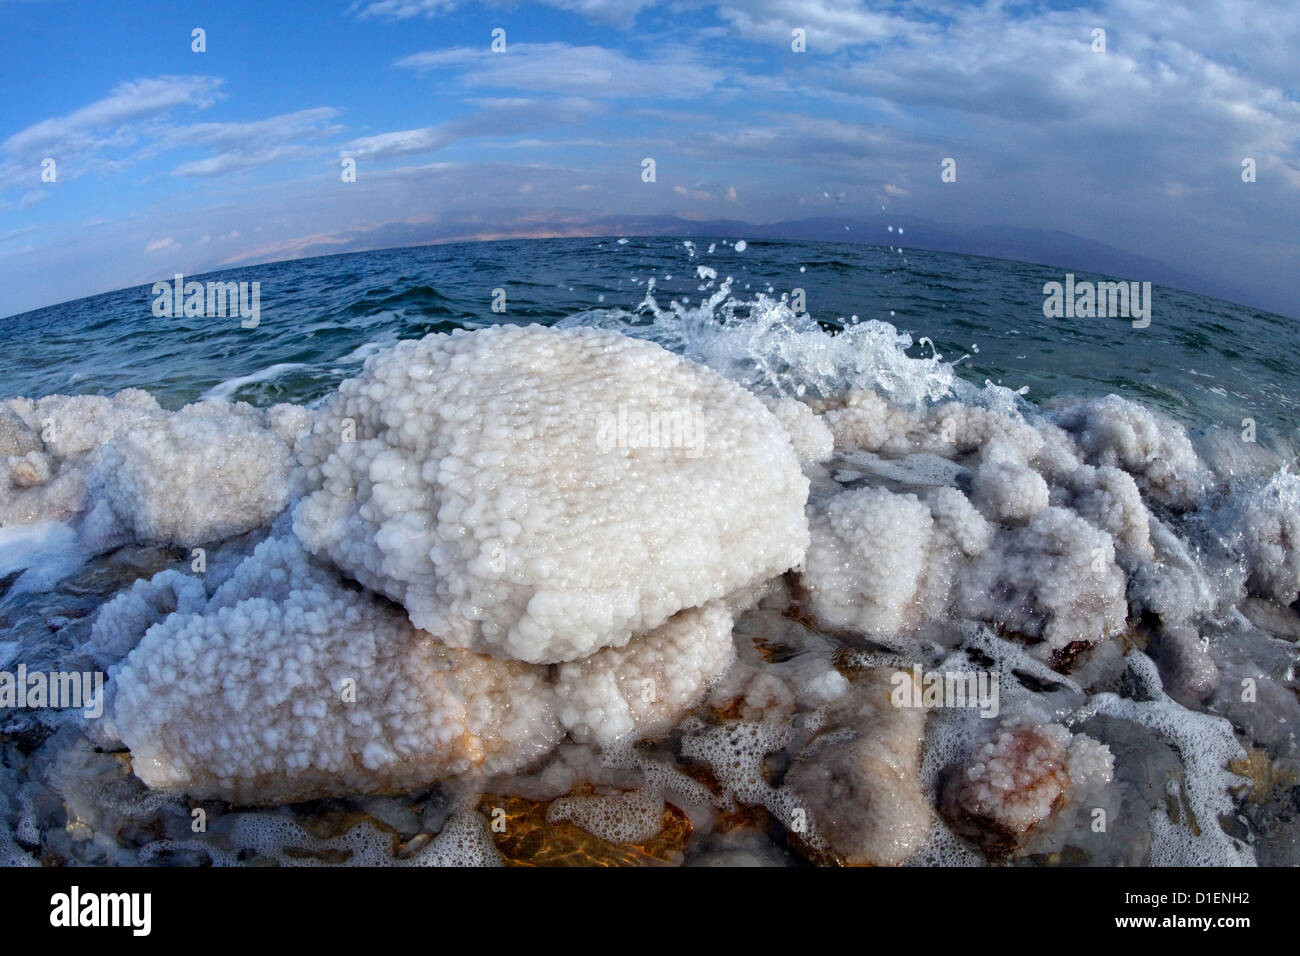 Salt crystal formations in the Dead Sea, Israel - Stock Image